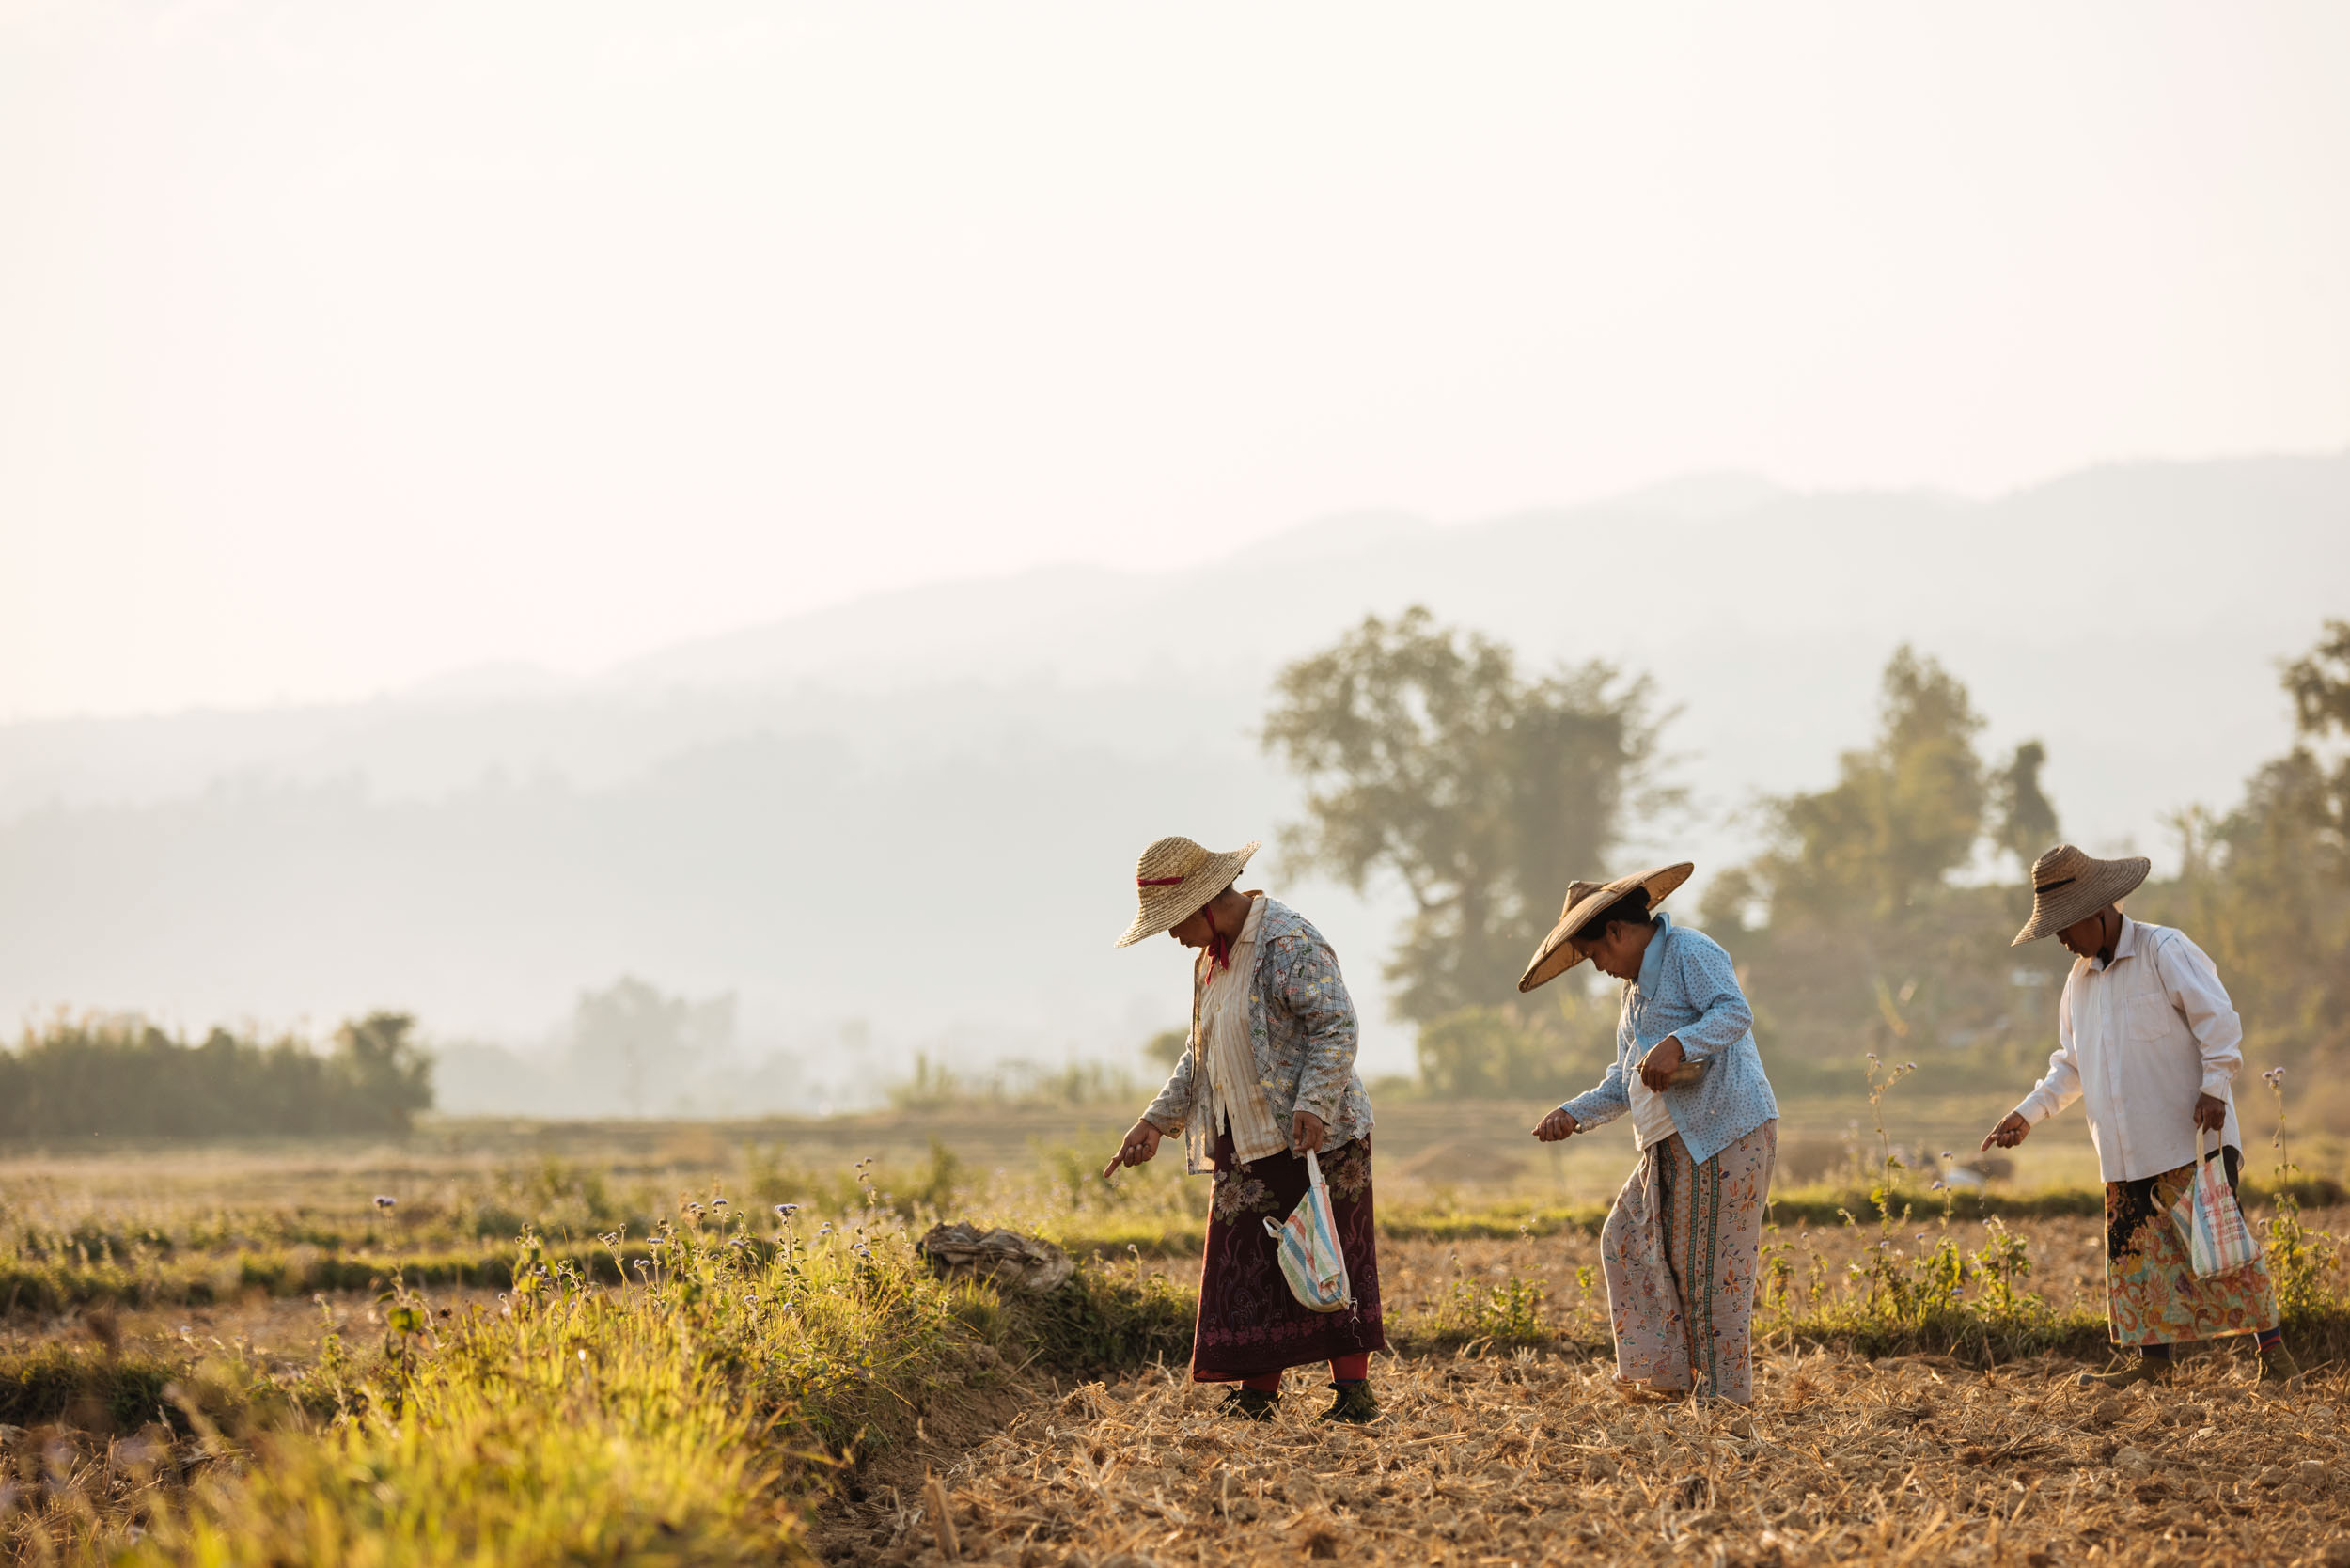 people-working-agriculture-fields-hispaw-myanmar